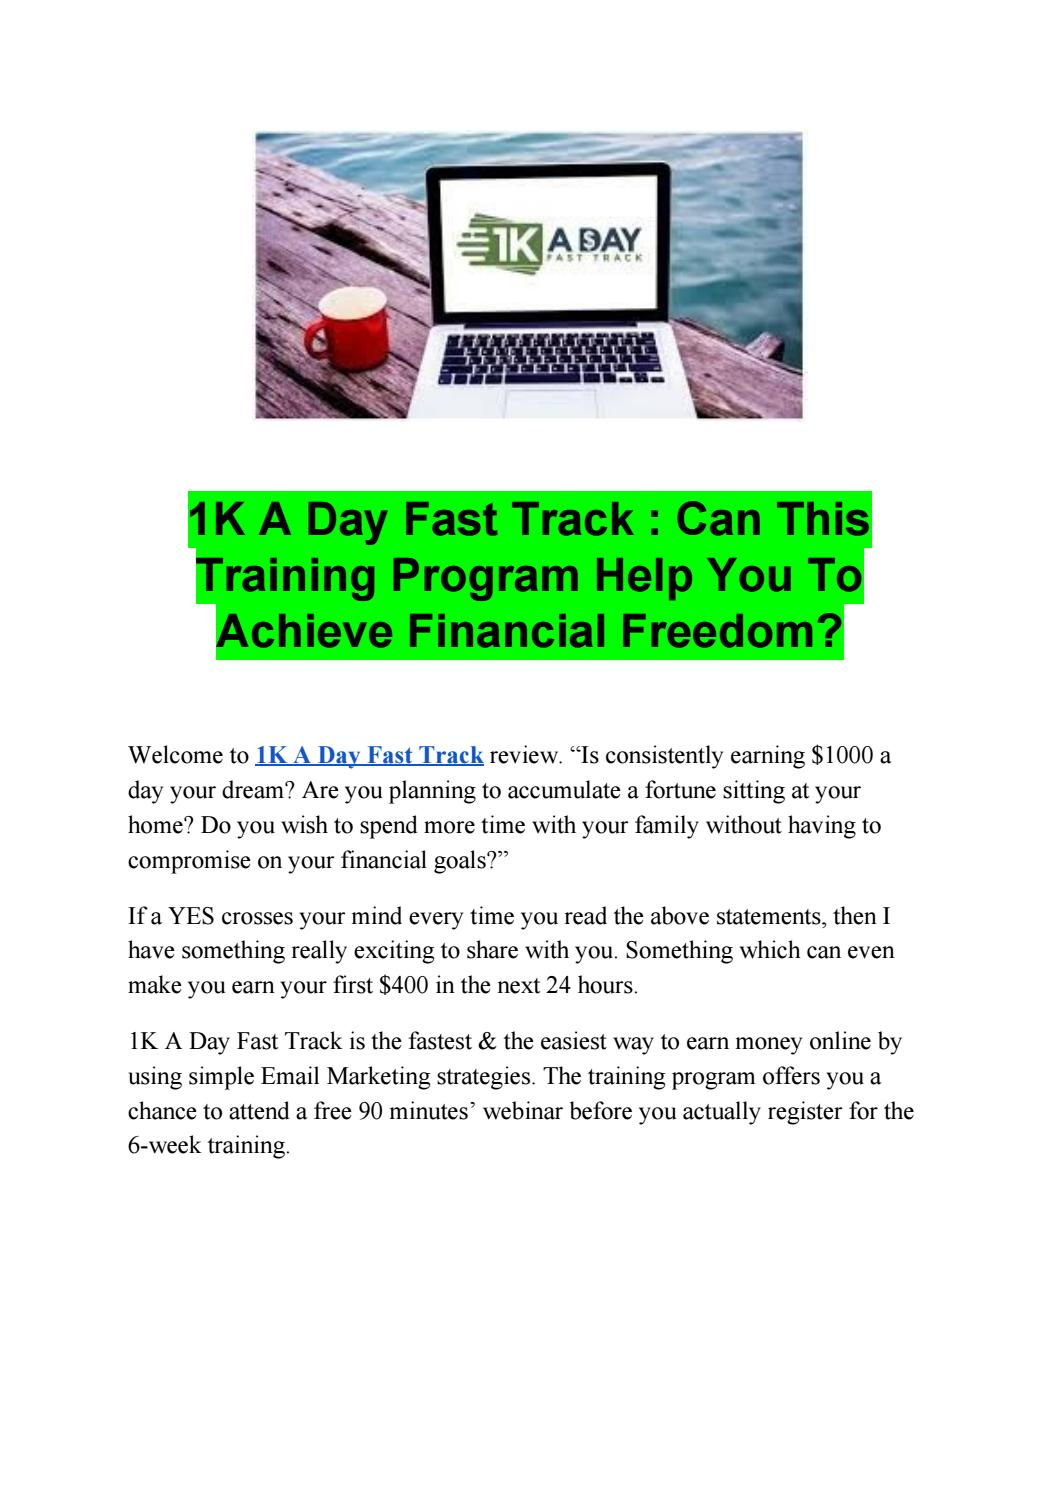 Images Price Training Program 1k A Day Fast Track